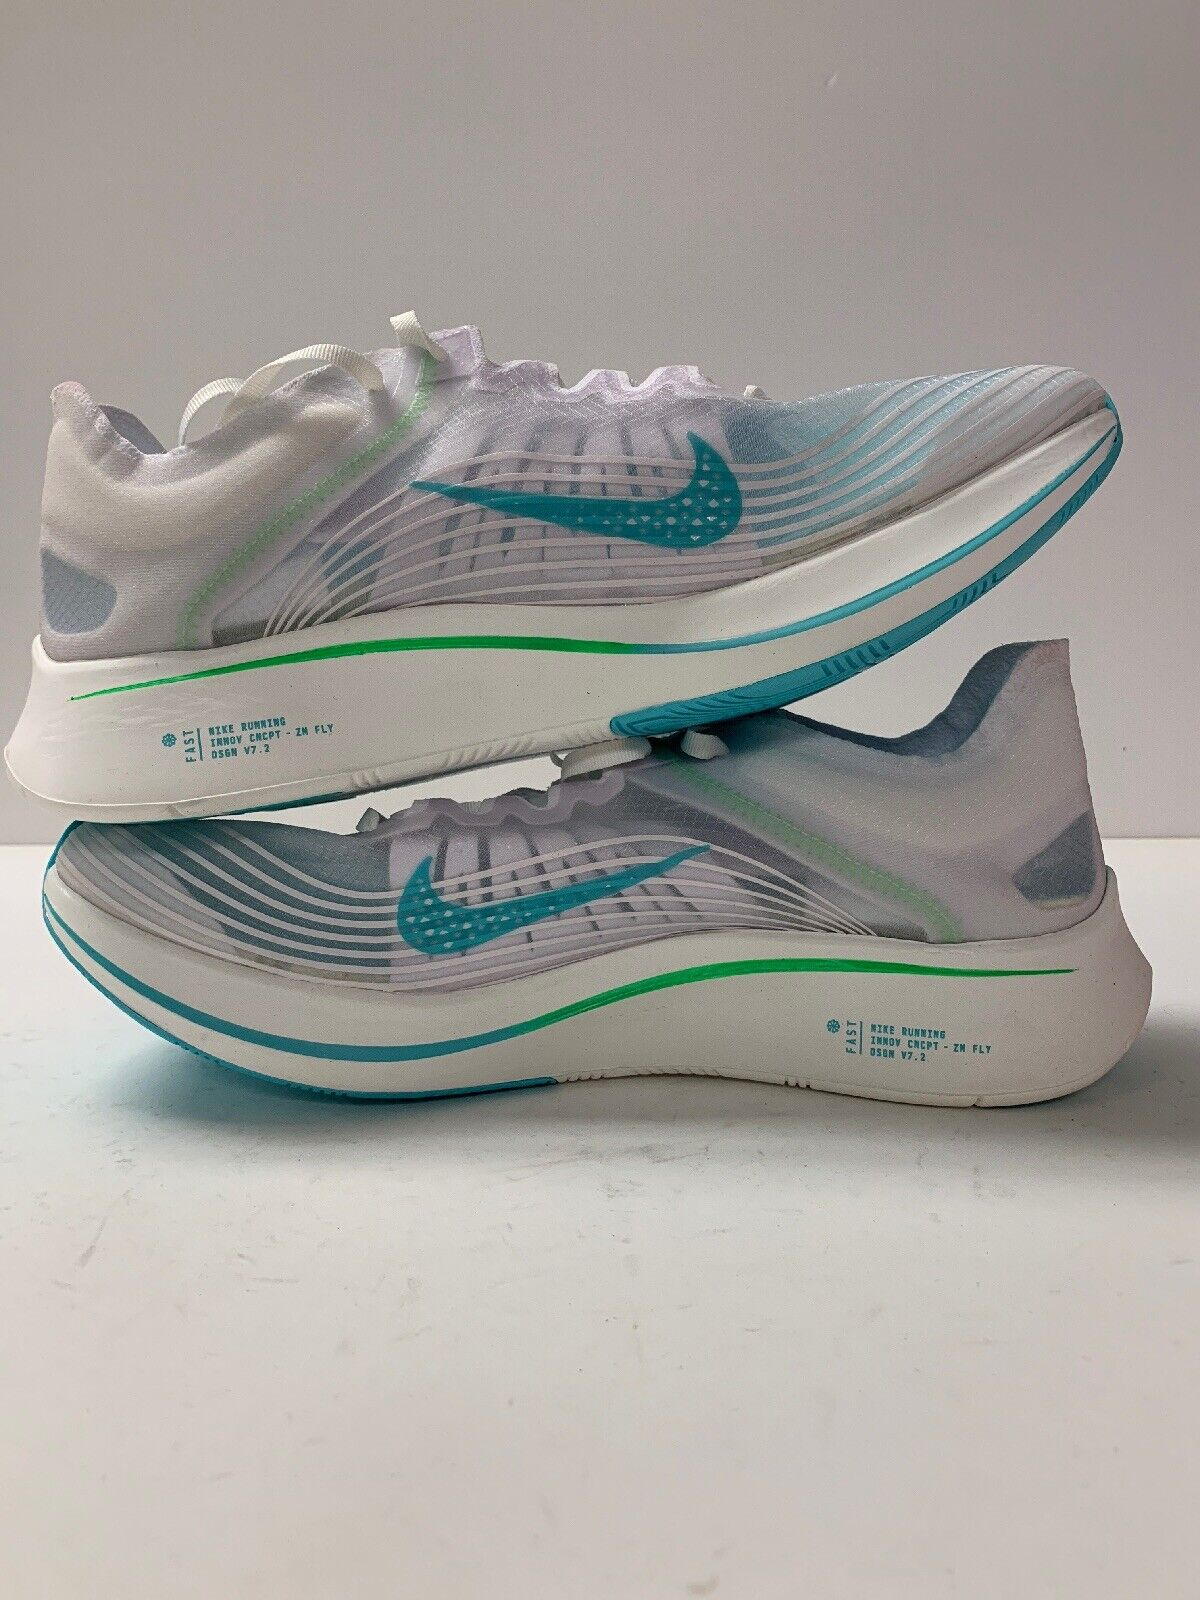 NIKE ZOOM FLY SP RUNNING SHOES WHITE RAGE GREEN MEN SIZE 11 NEW AJ9282-103